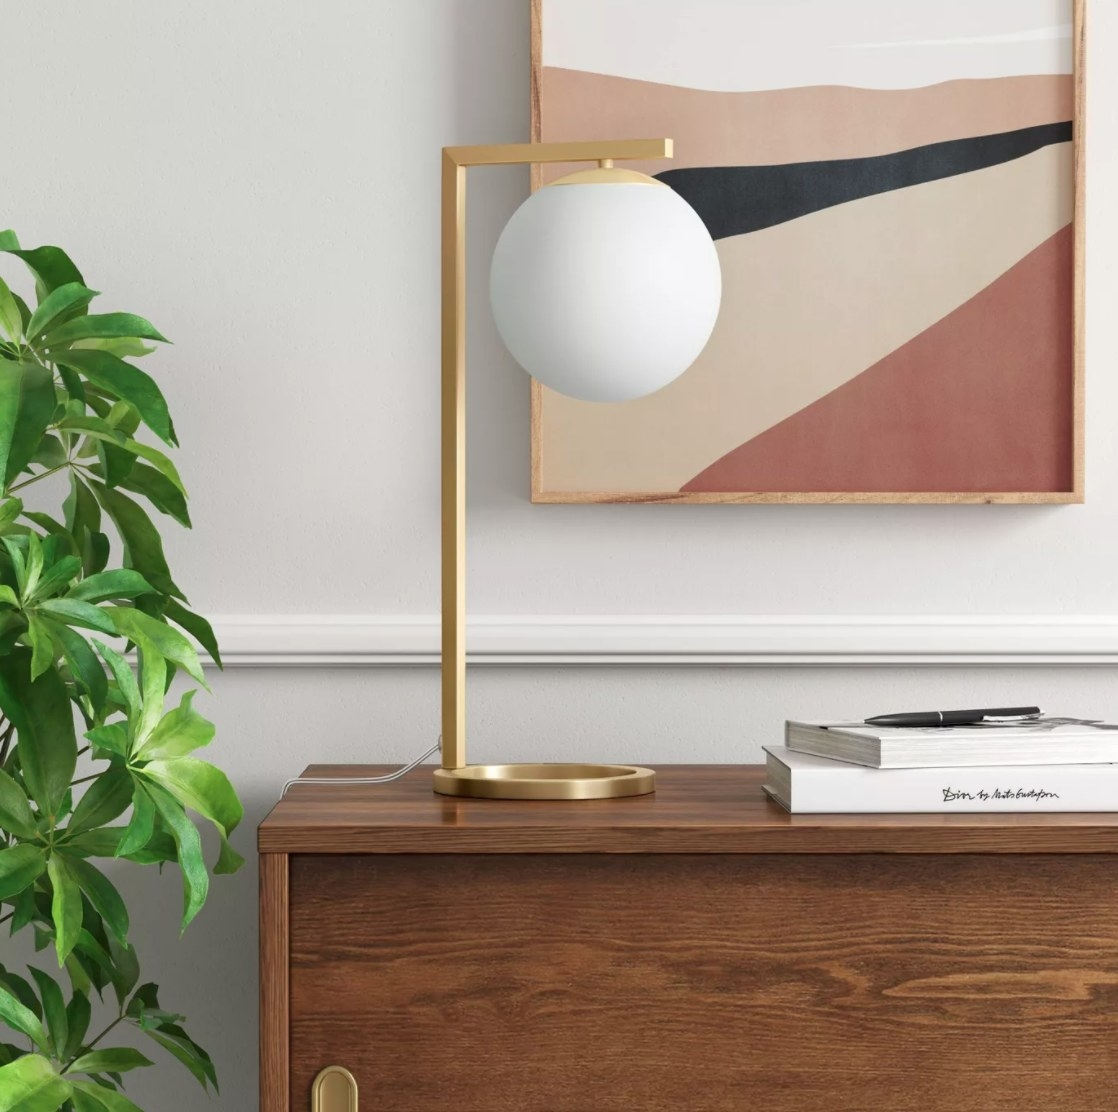 The gold accent lamp